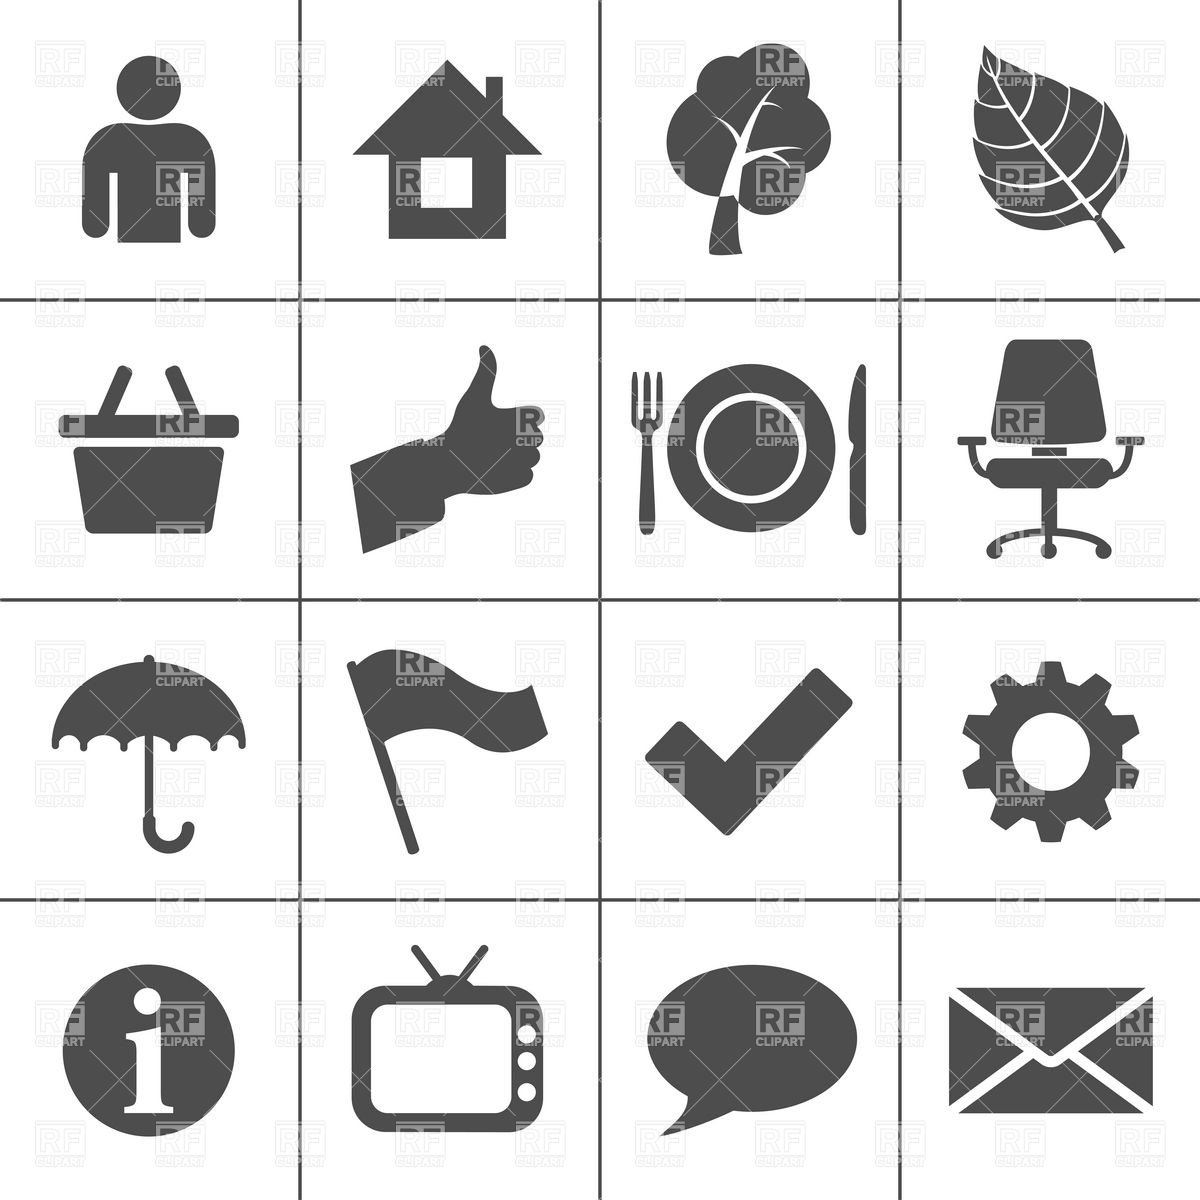 1200x1200 Services Icons, Simplus Series Vector Image Vector Artwork Of